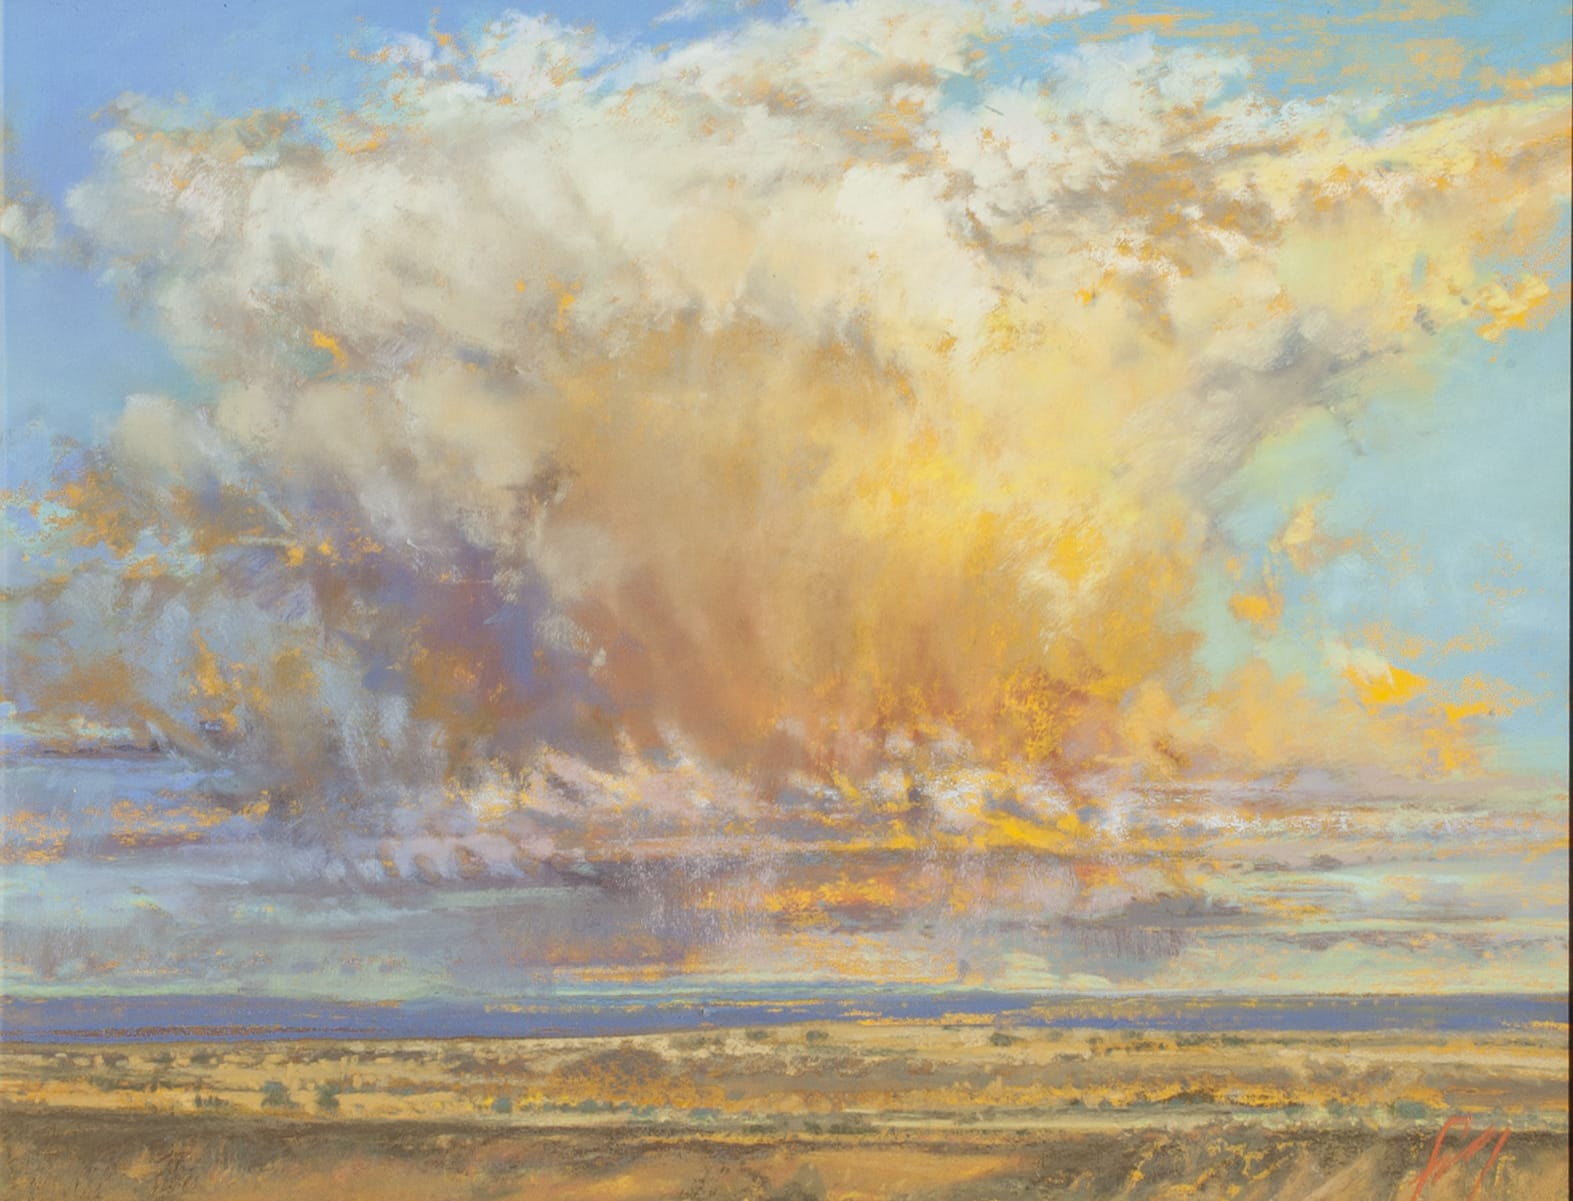 Thunderhead painting by Iva Morris